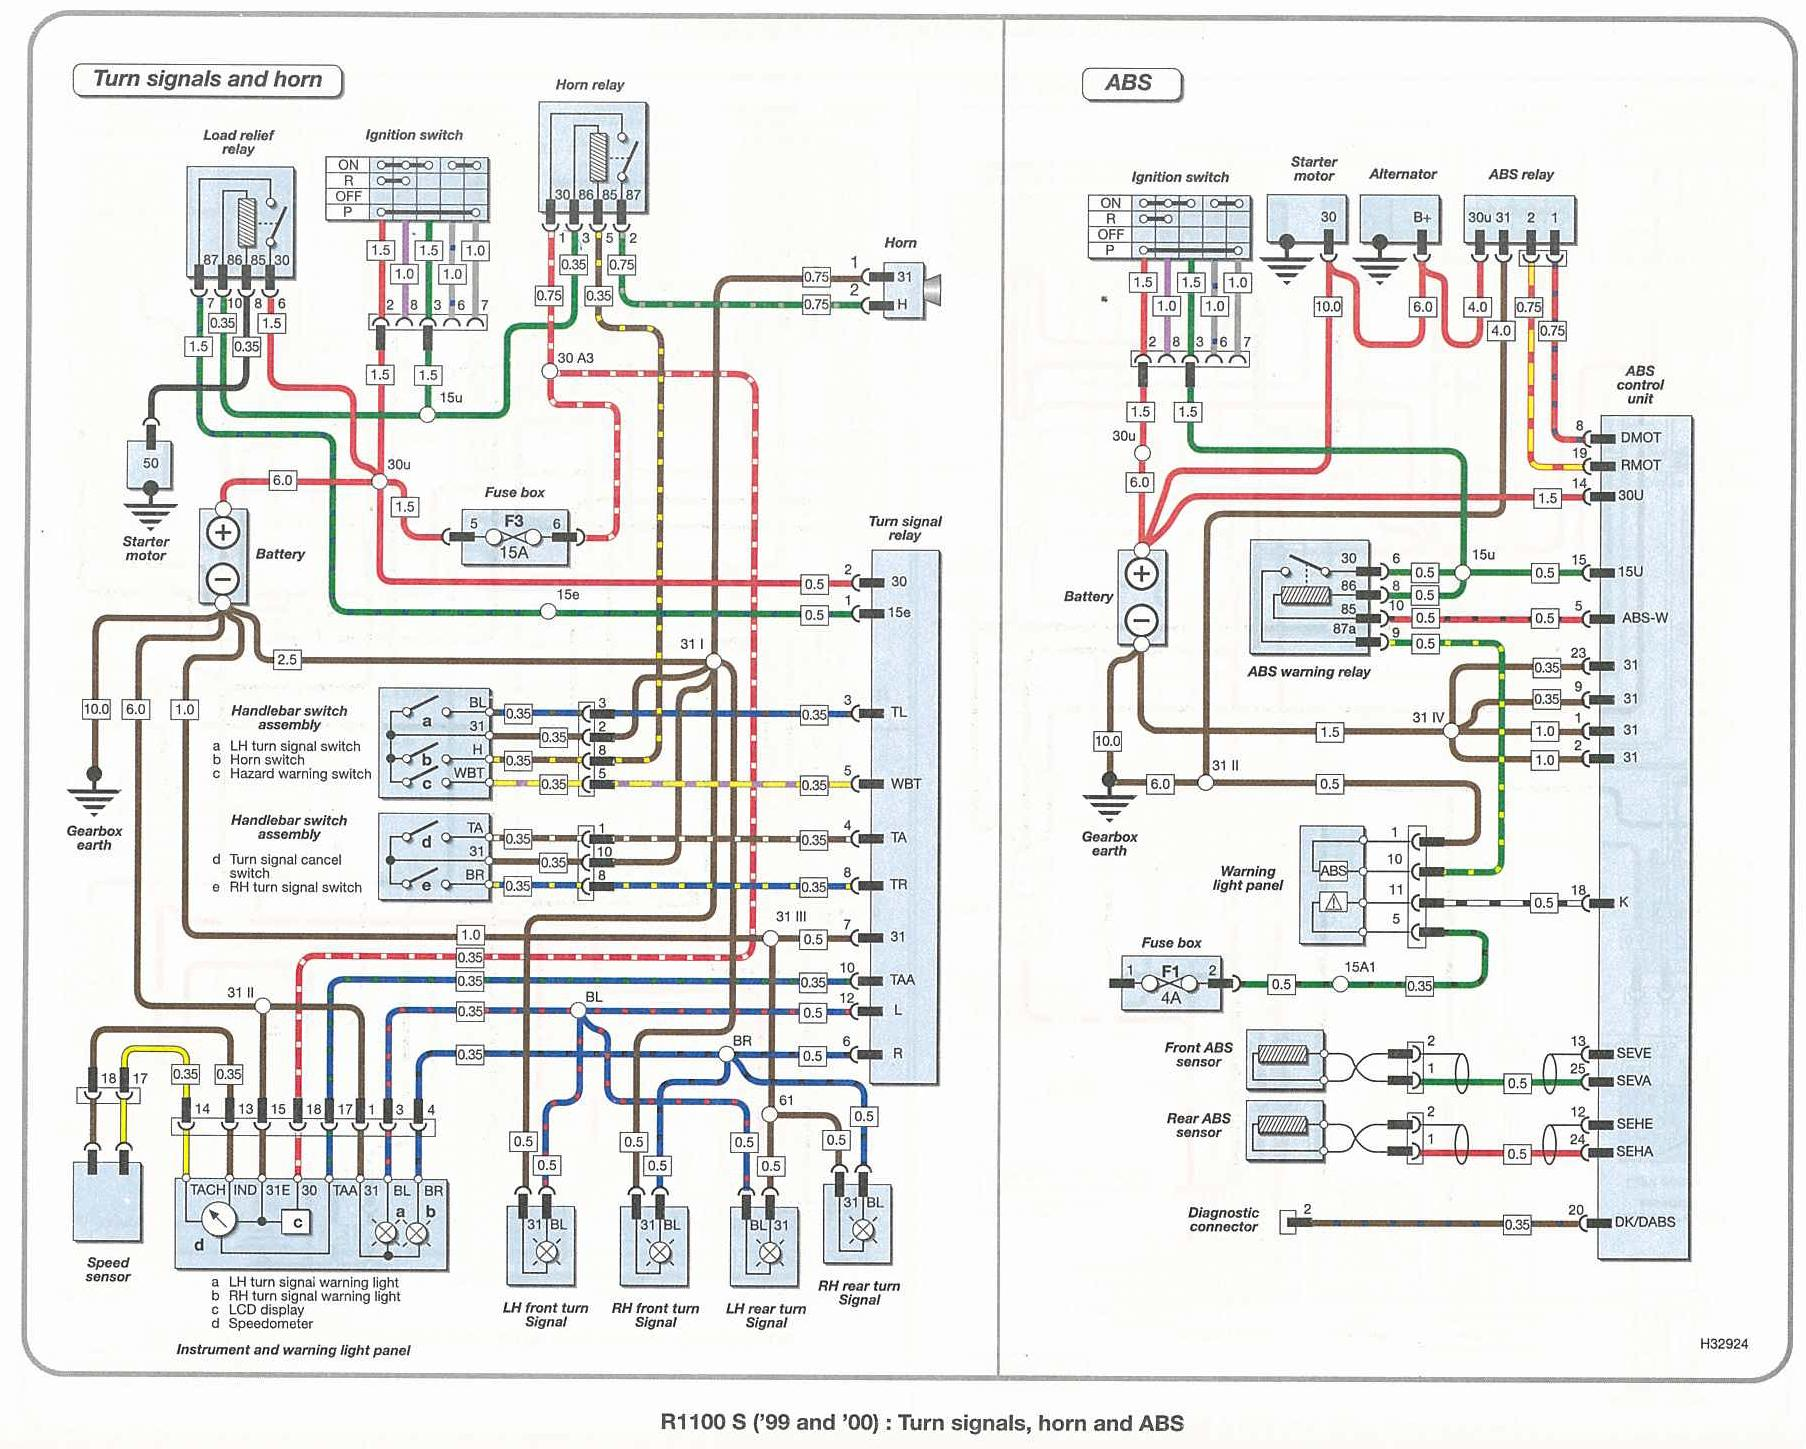 wiring03 bmw wiring diagram bmw wiring diagrams e39 \u2022 wiring diagrams j E46 Wiring Diagram PDF at alyssarenee.co